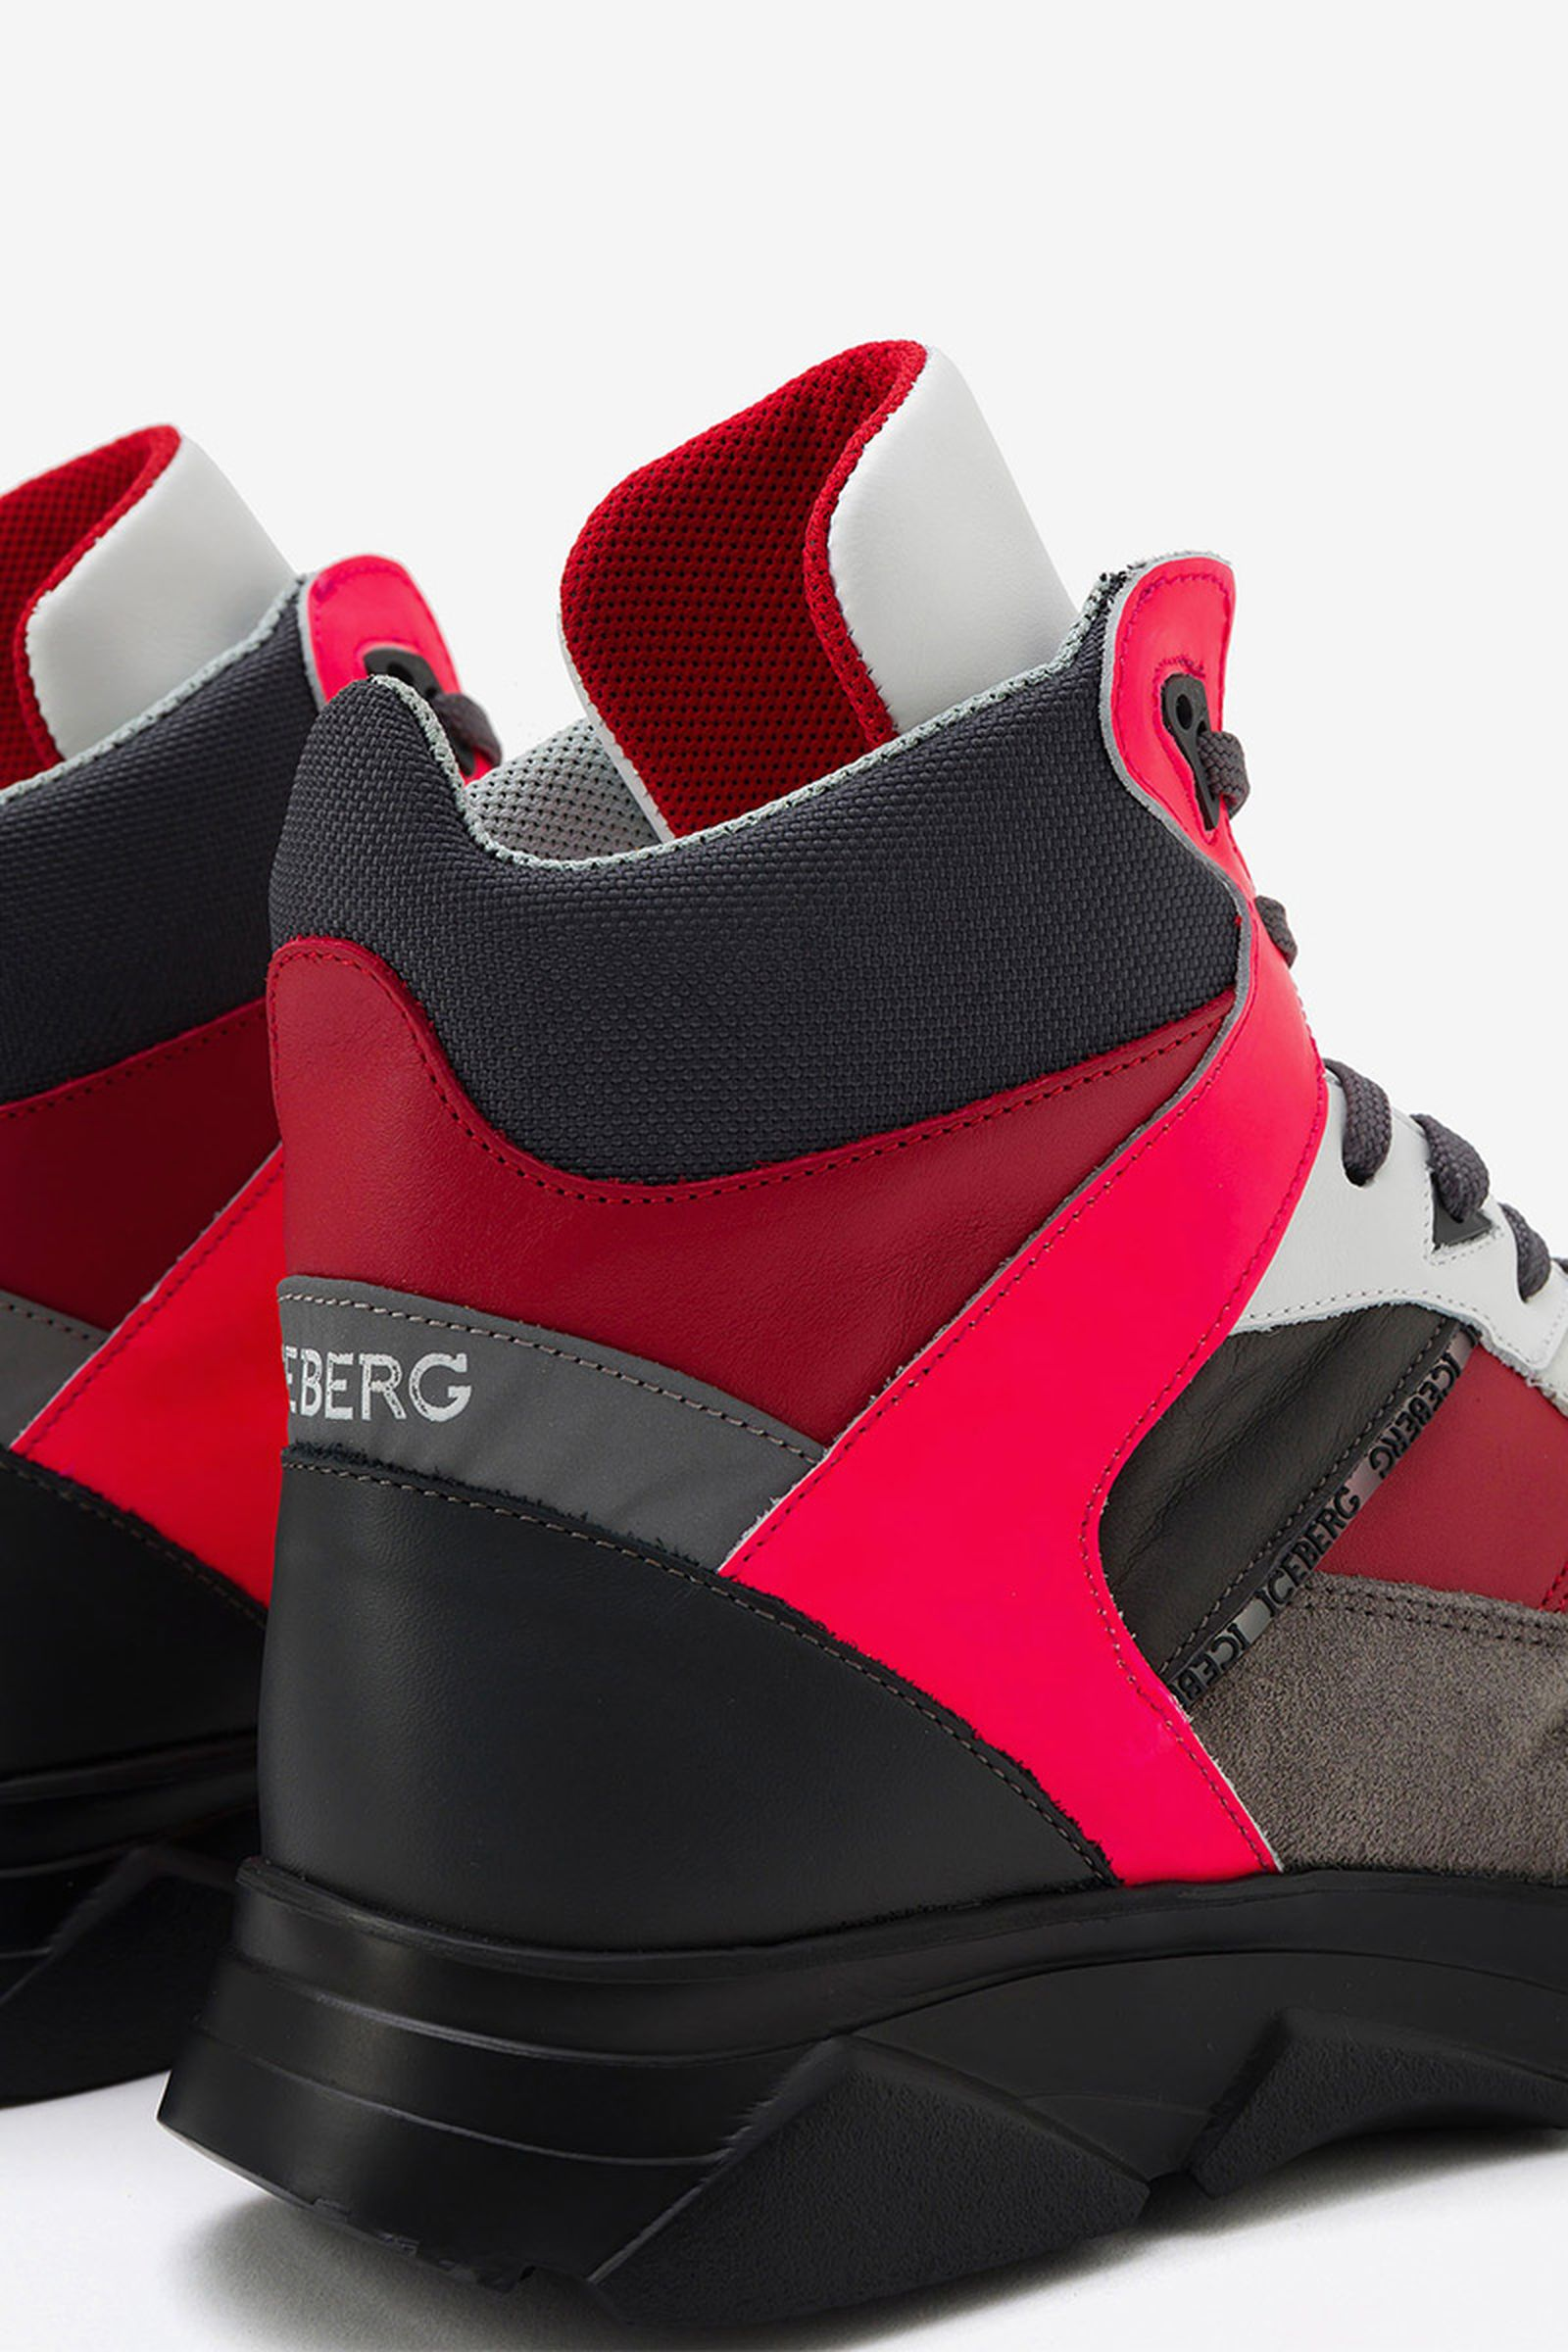 iceberg-sneaker-urban-trek-runner-punk-pop-culture-pre-fall-2019-8